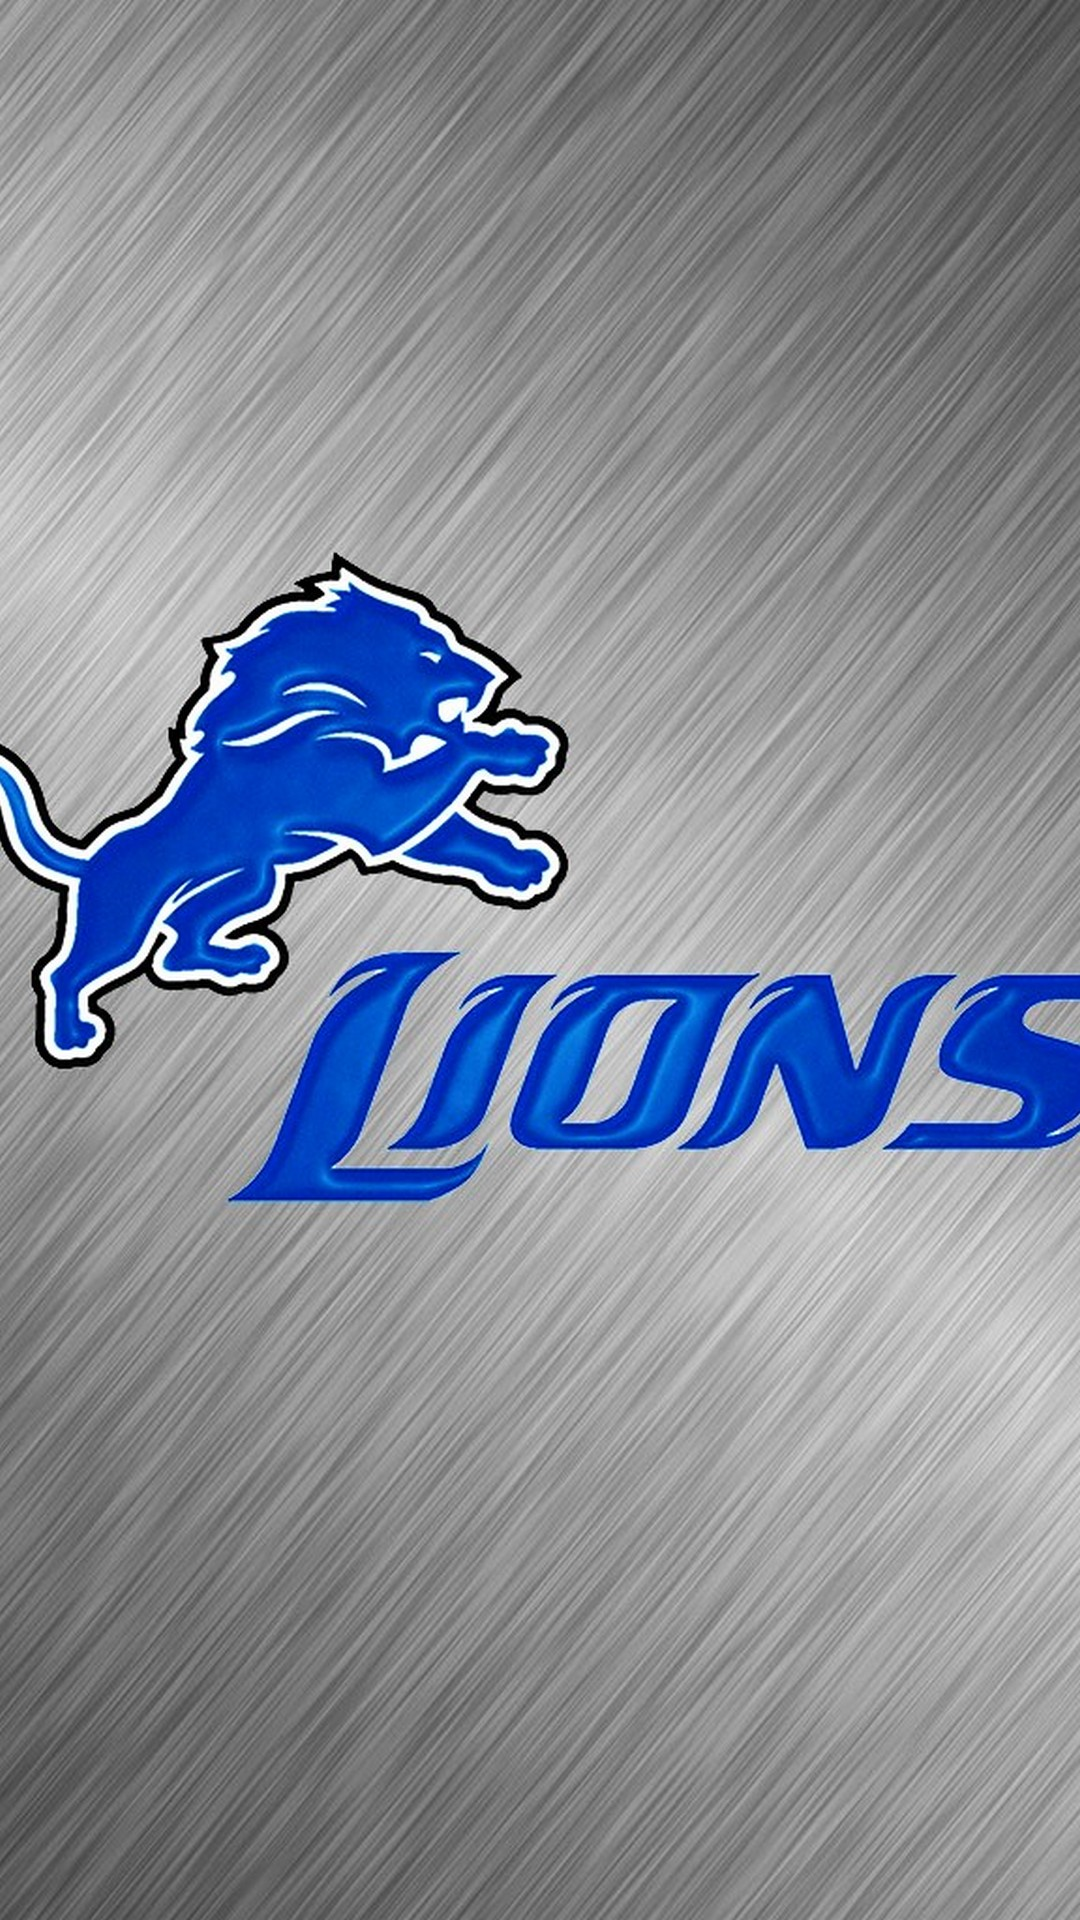 Detroit Lions Iphone Home Screen Wallpaper With High-resolution - Graphic Design - HD Wallpaper